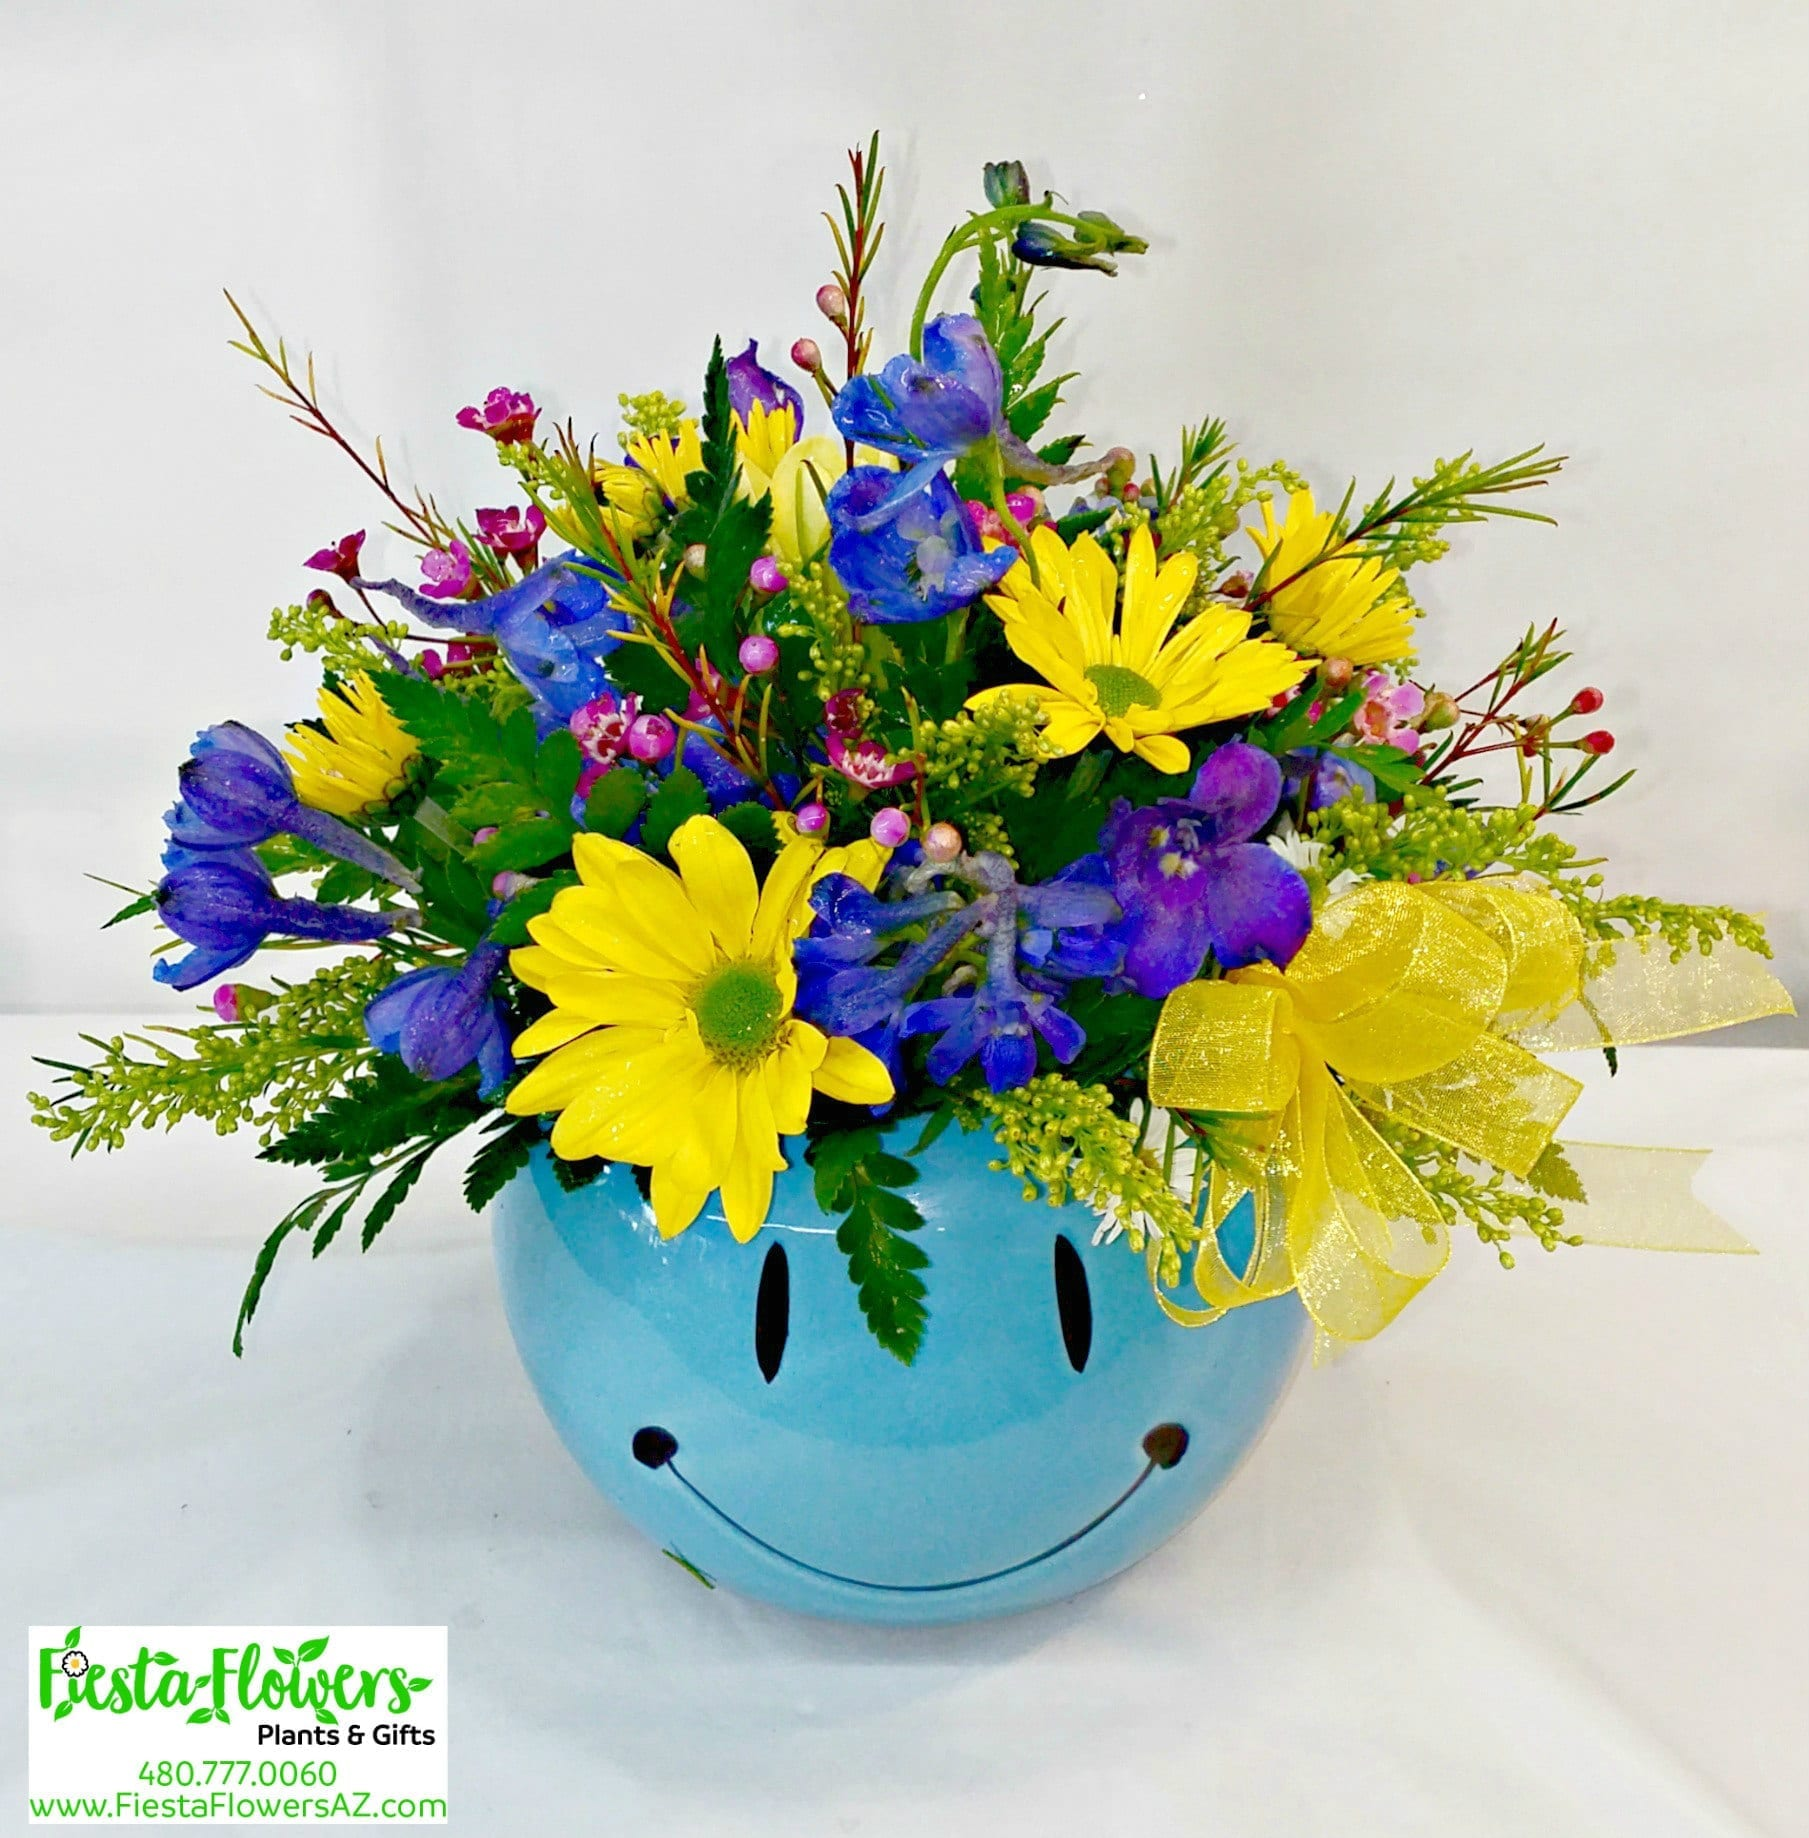 Fiesta Flowers Smiley Bouquets and Flower Arrangements